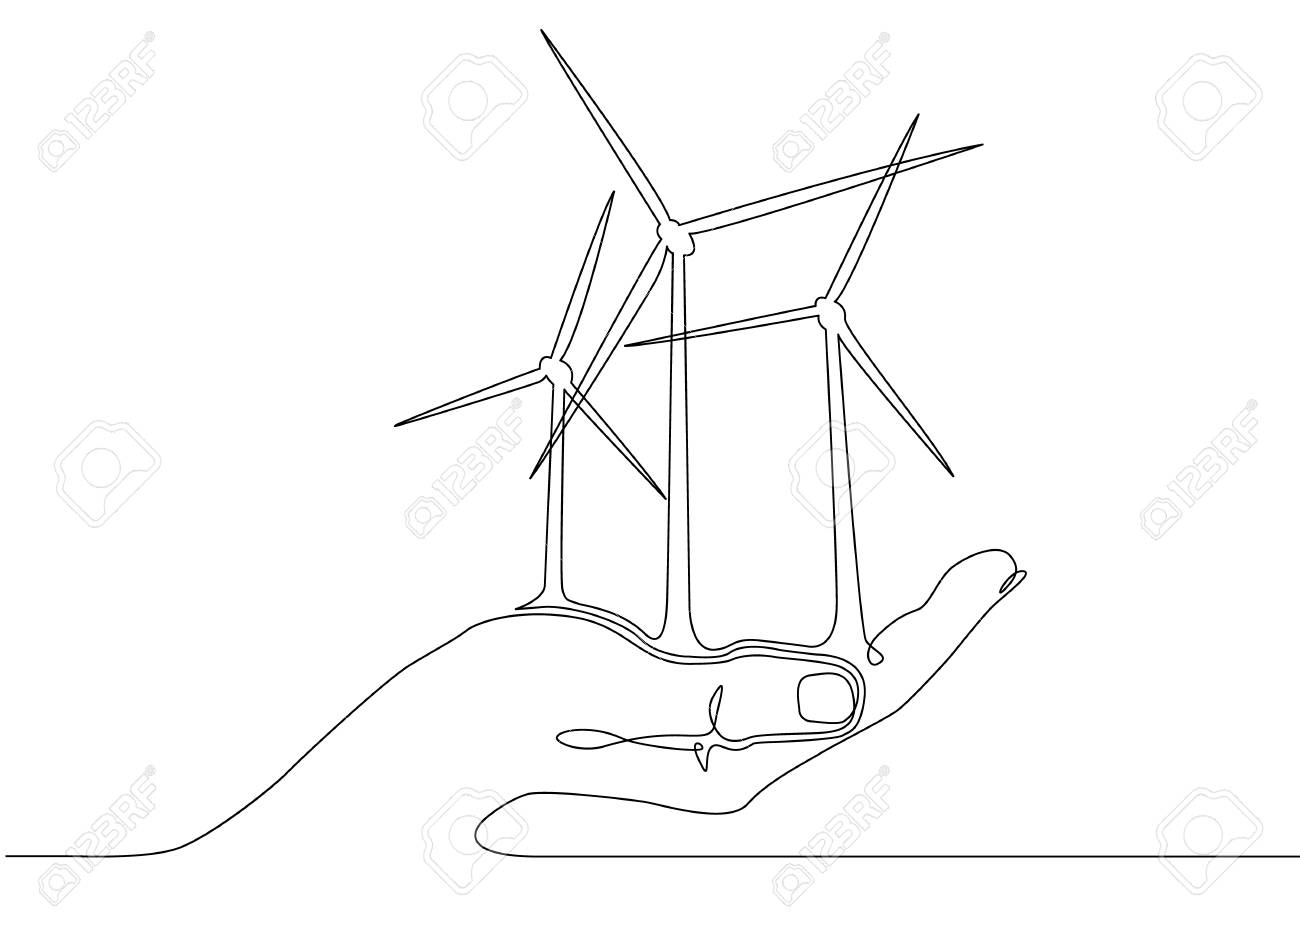 Continuous One Line Drawn Silhouette Of Wind Turbine Alternative